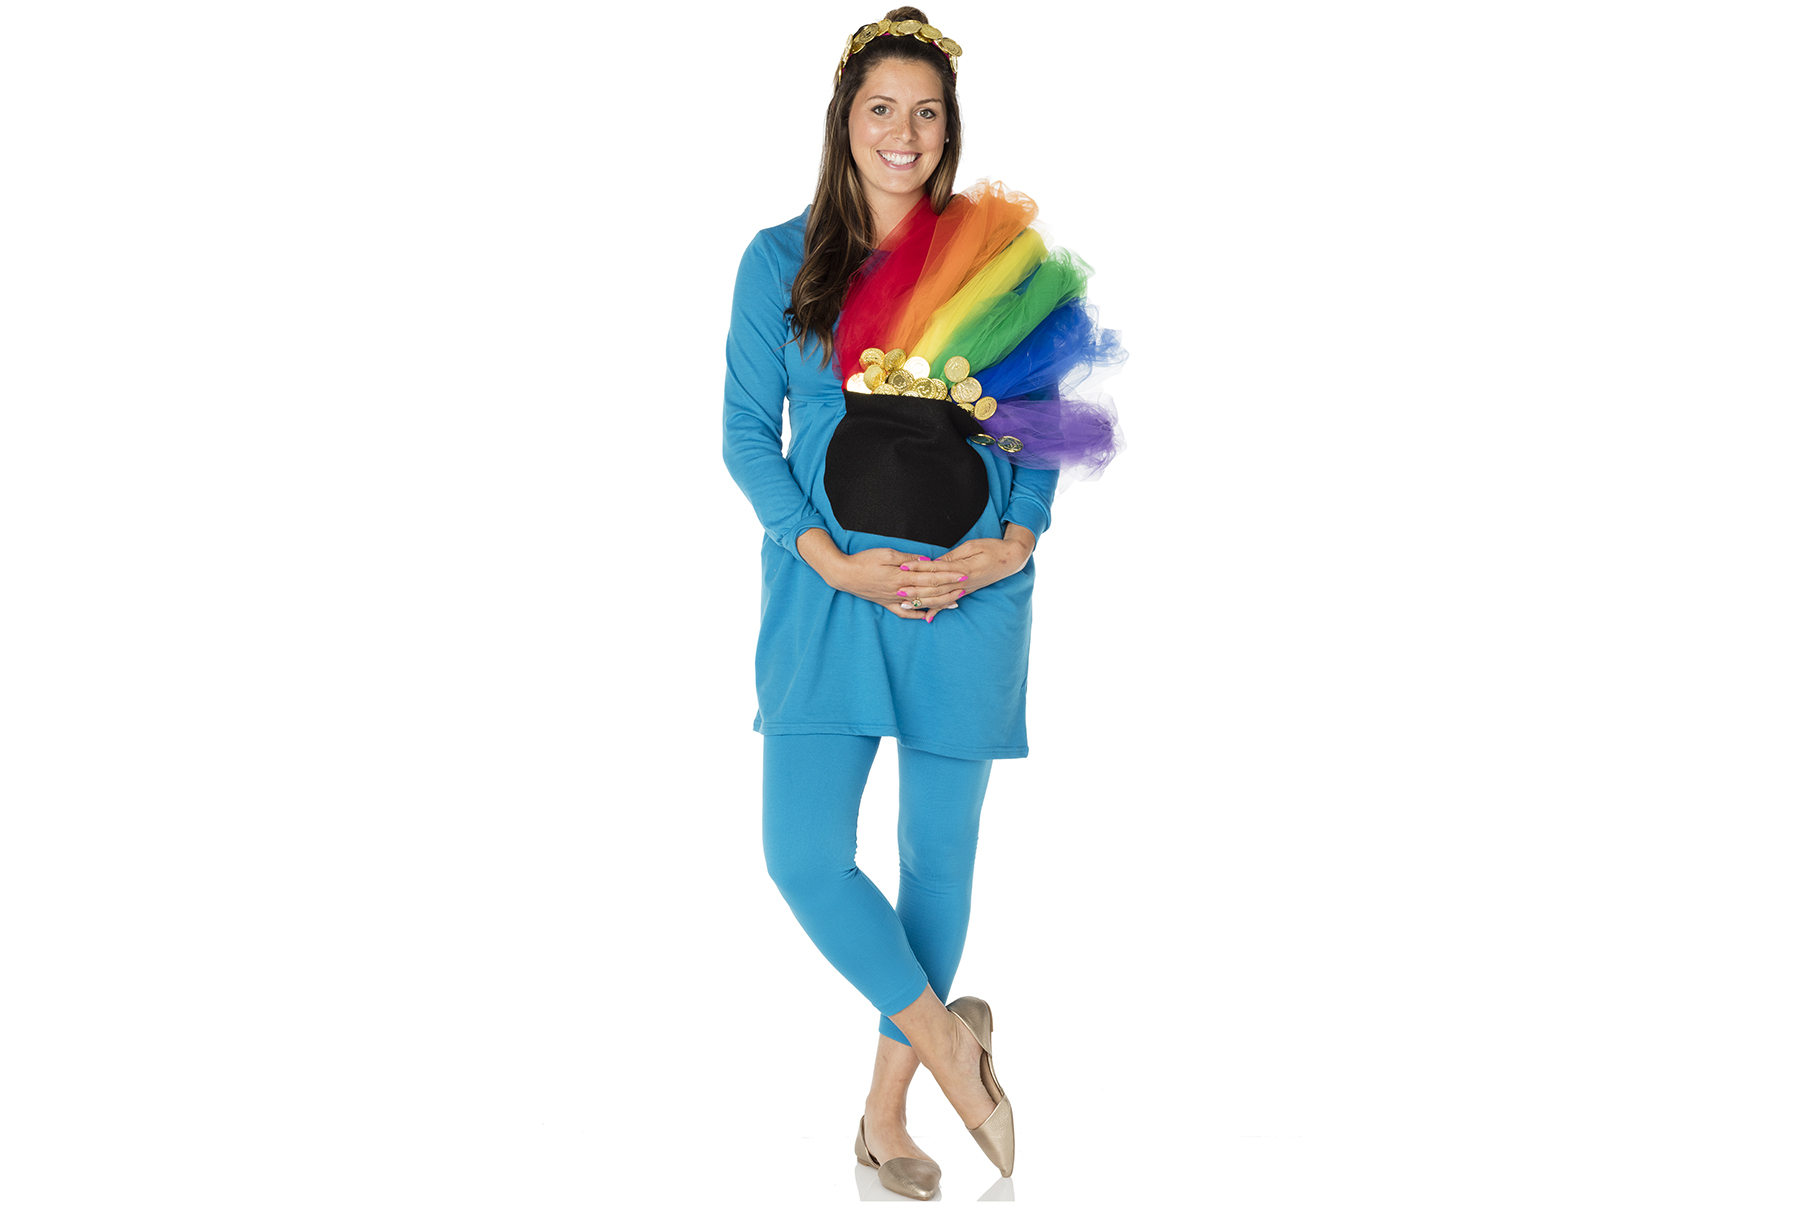 5 Creative Halloween Costumes for Pregnant Women